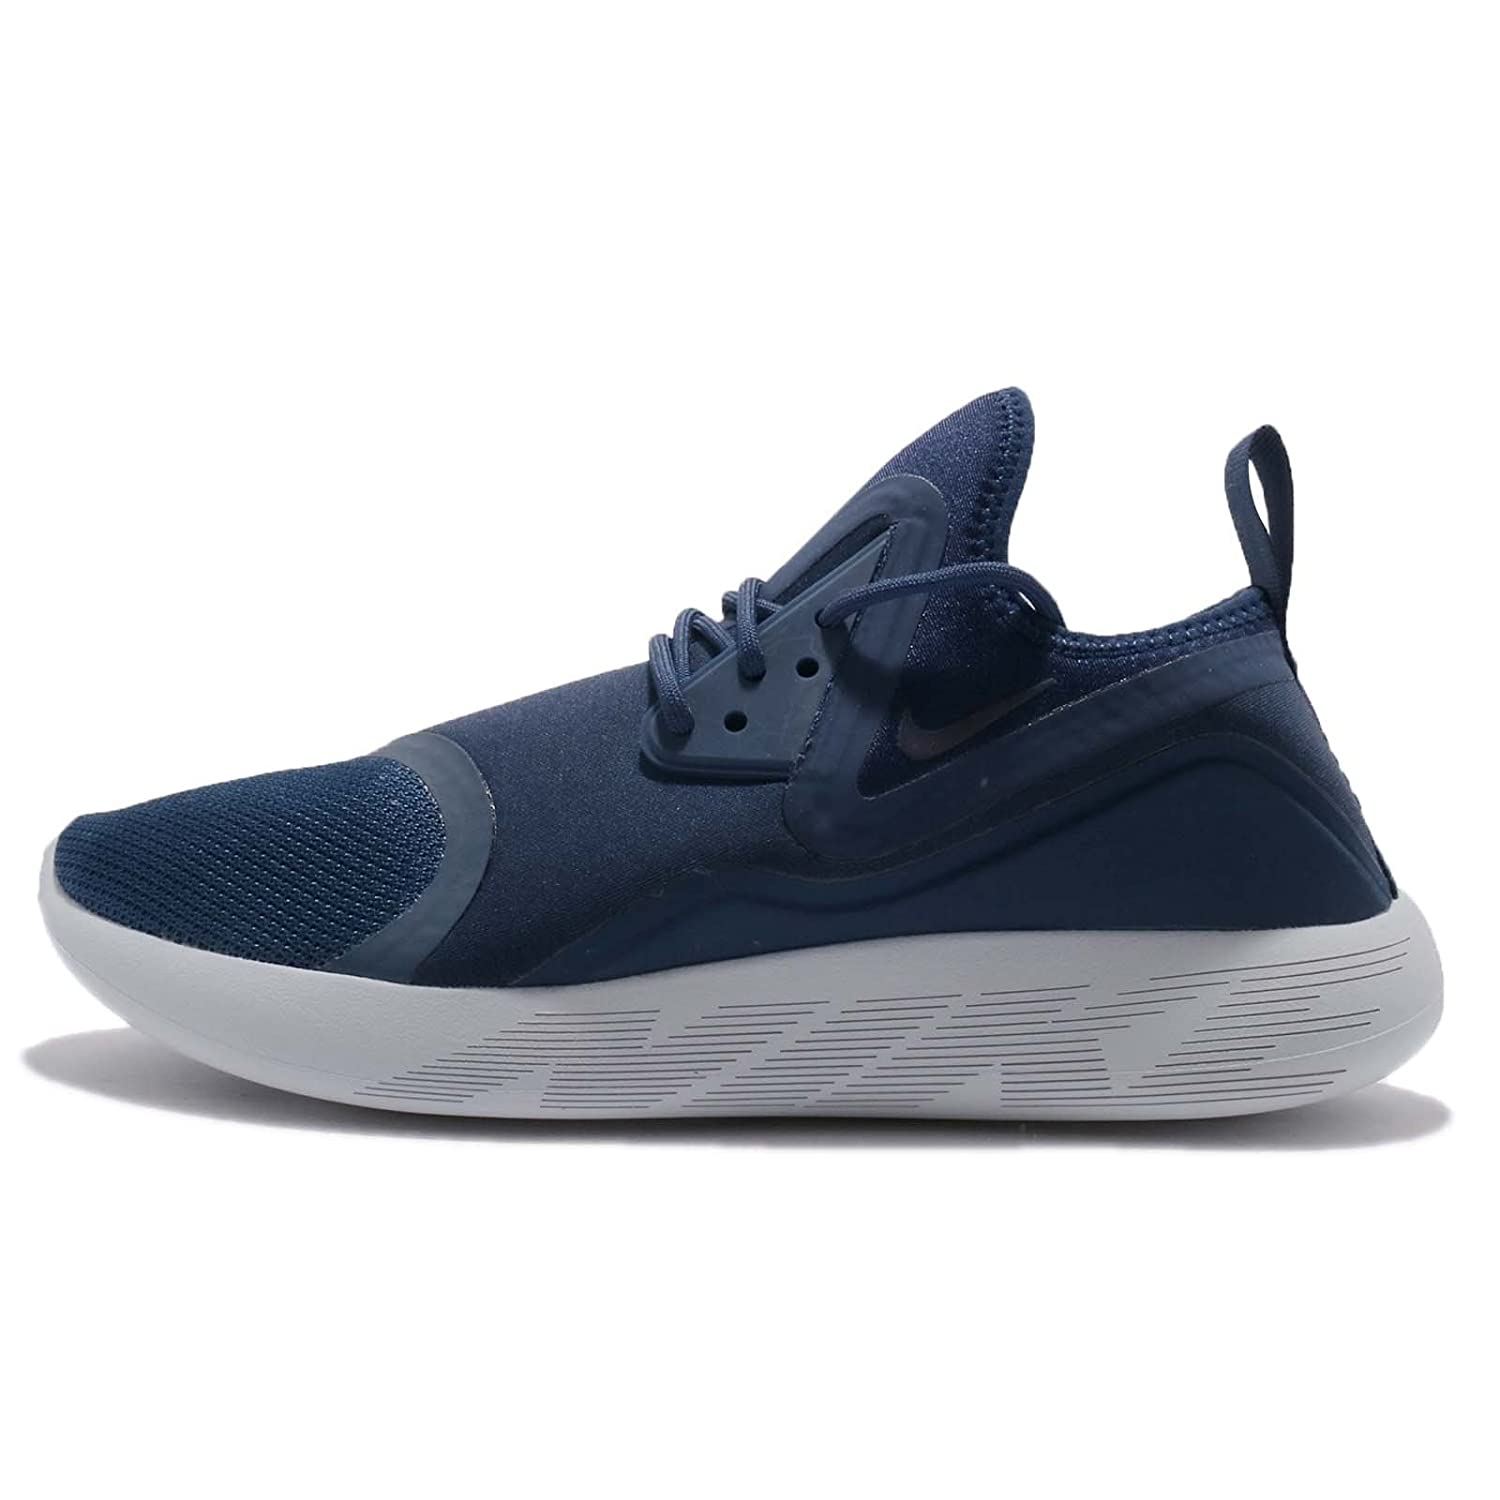 Nike Mens Lunarcharge Essential Ankle-High Fabric Running Shoe  44 EU|Midnight Navy 401